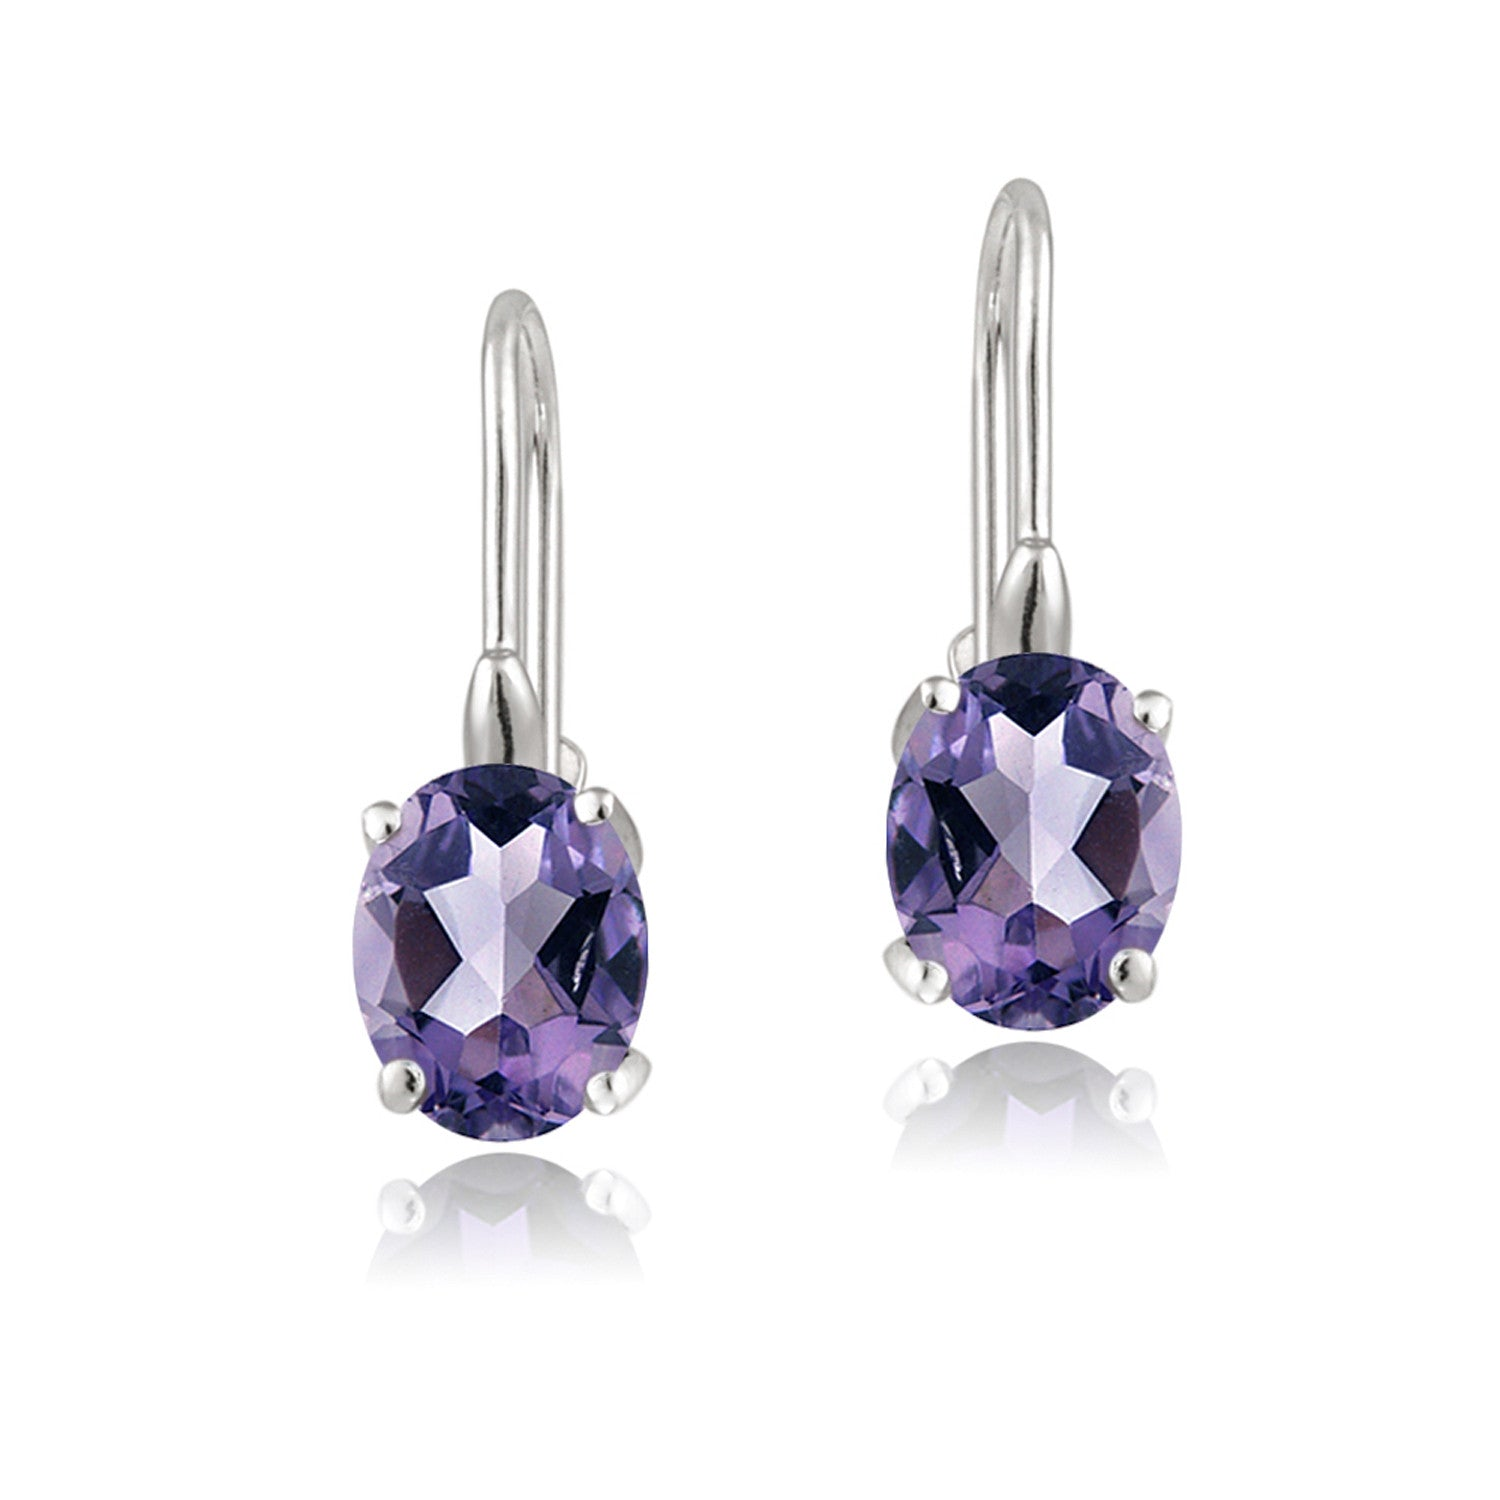 Sterling Silver Oval Cut Birthstone Leverback Dangle Earrings - February Amethyst